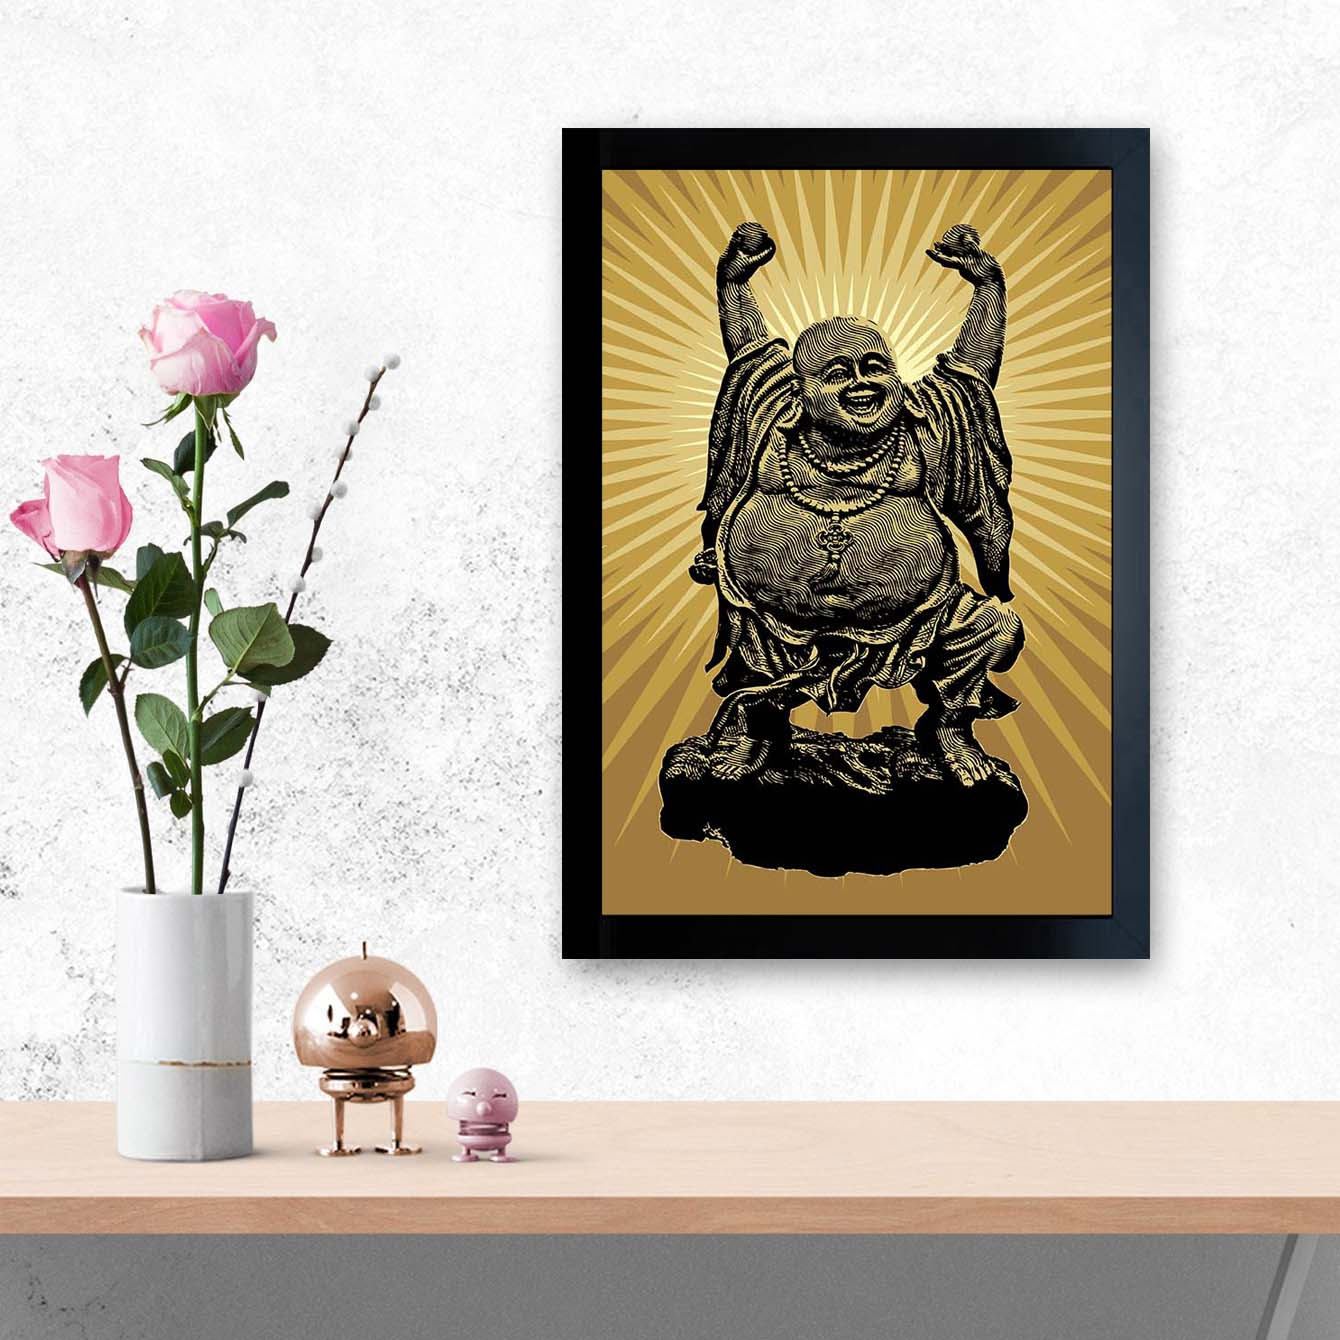 Laughing Buddha Spiritual Glass Framed Posters & Artprints